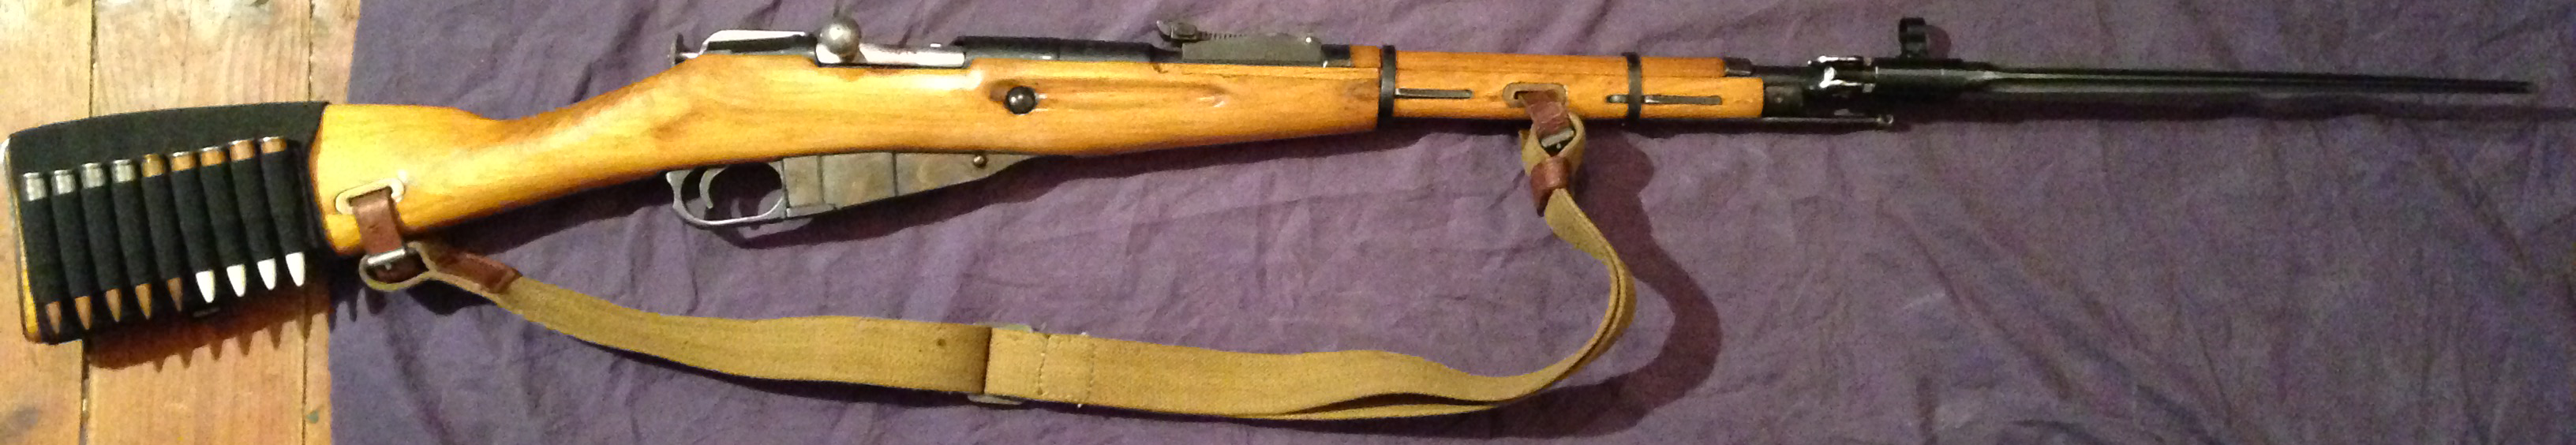 Conversion Mosin Nagant 91/30 En M44 Jxcu